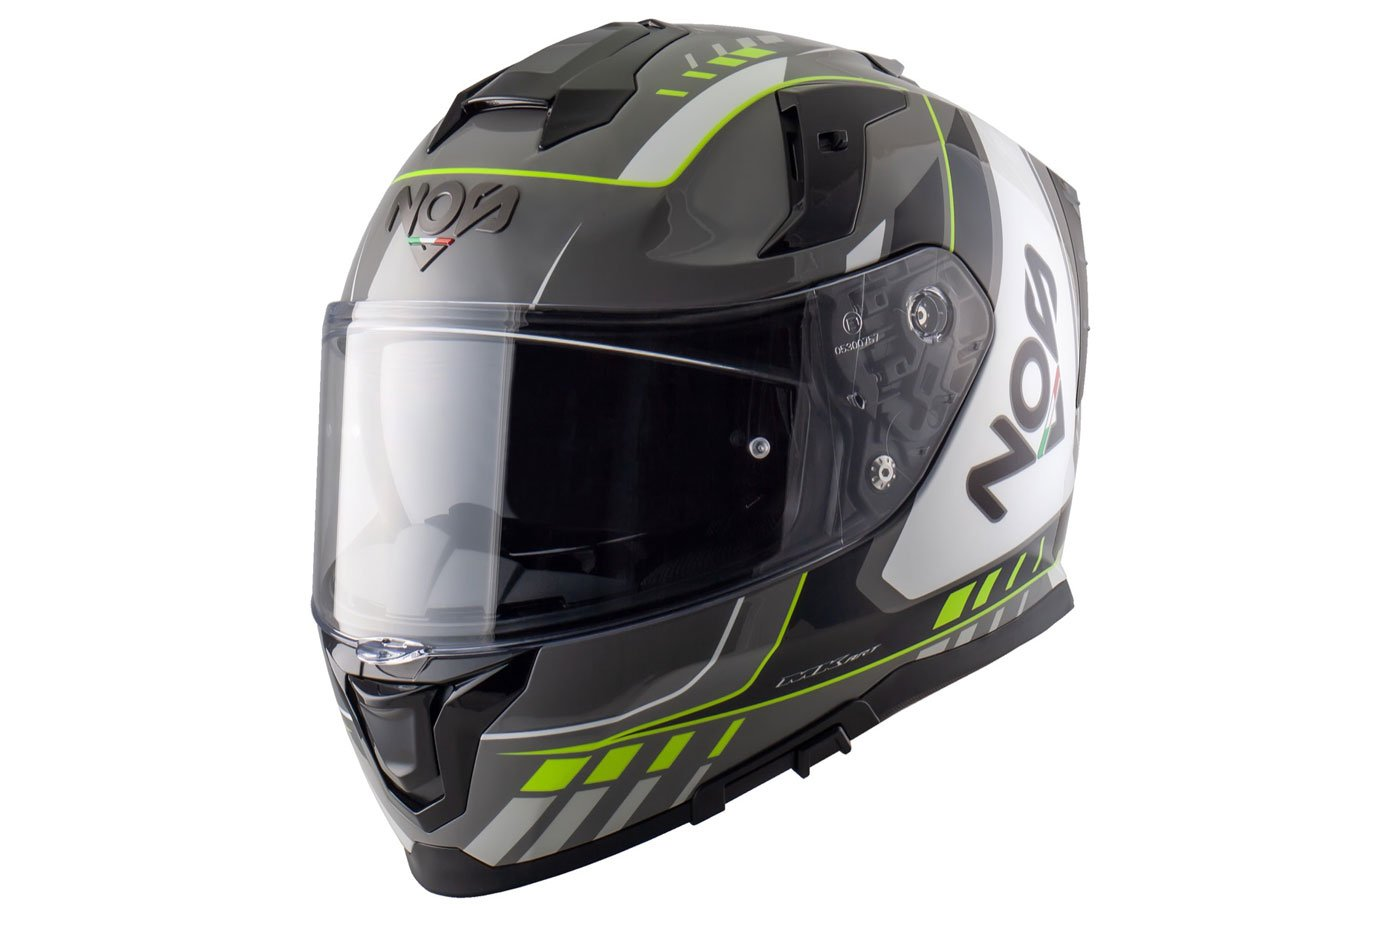 Casco integrale Nos NS-10